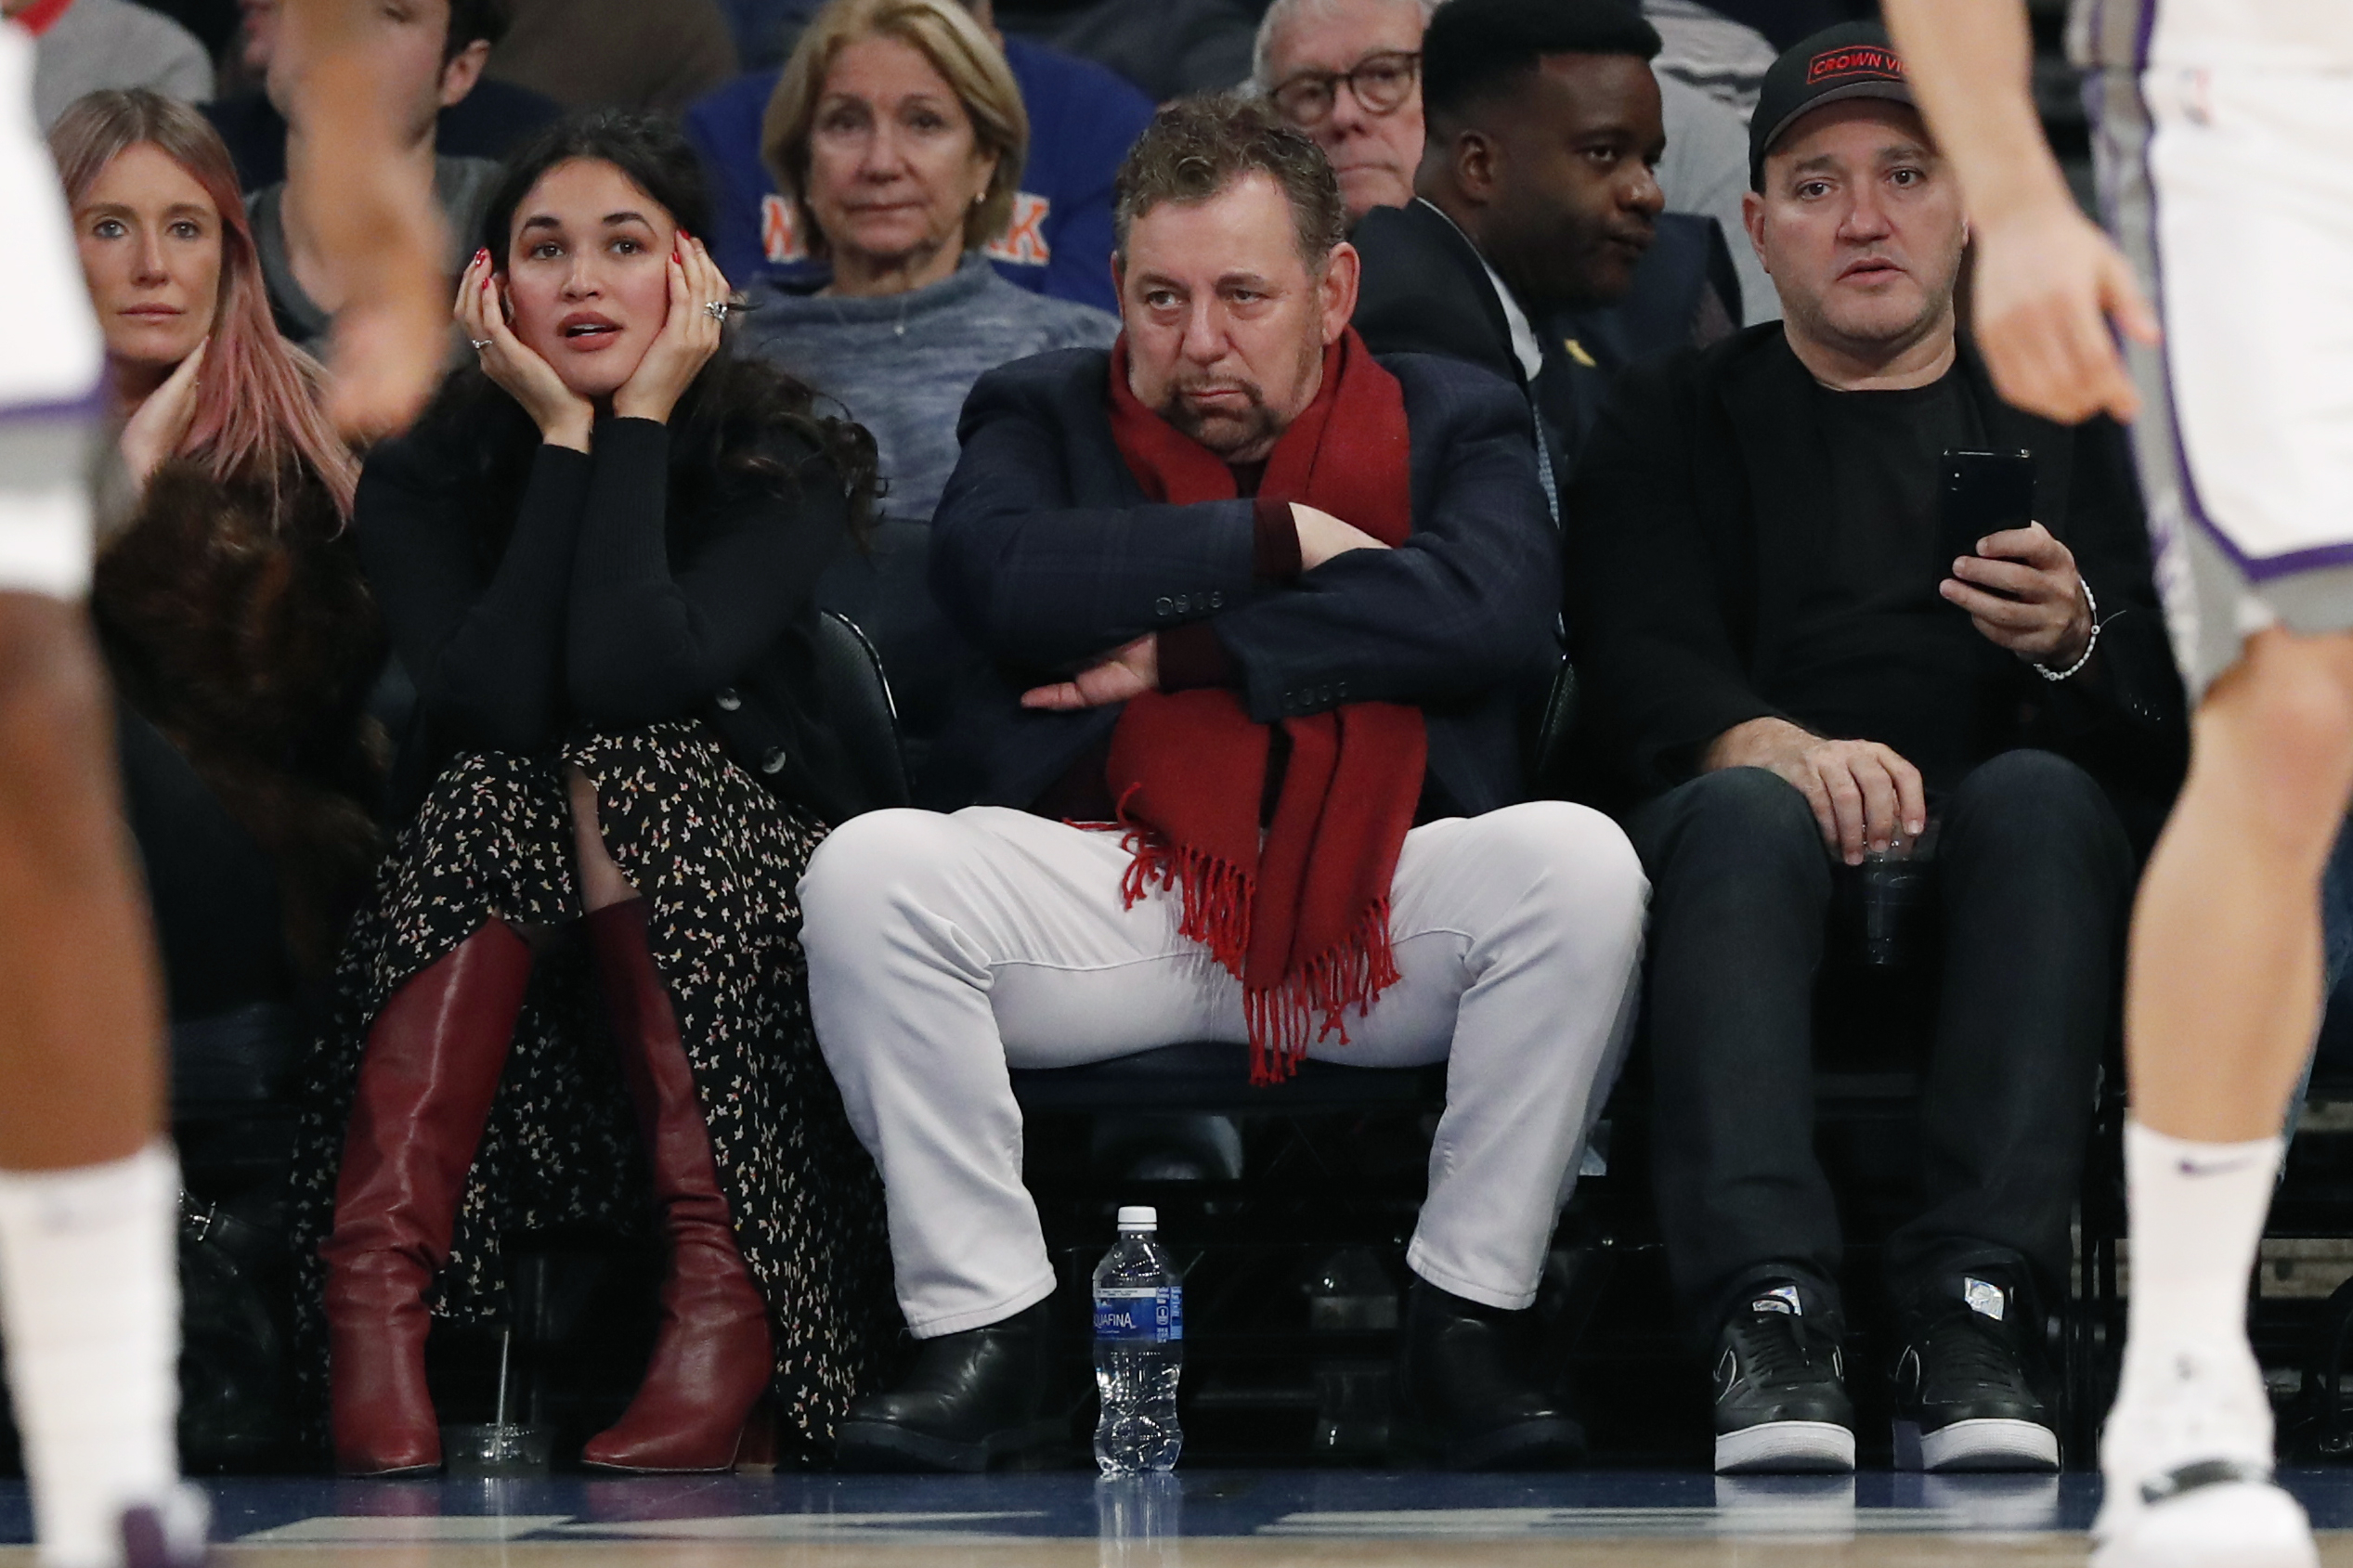 James Dolan urged to sell Knicks and Rangers by investor